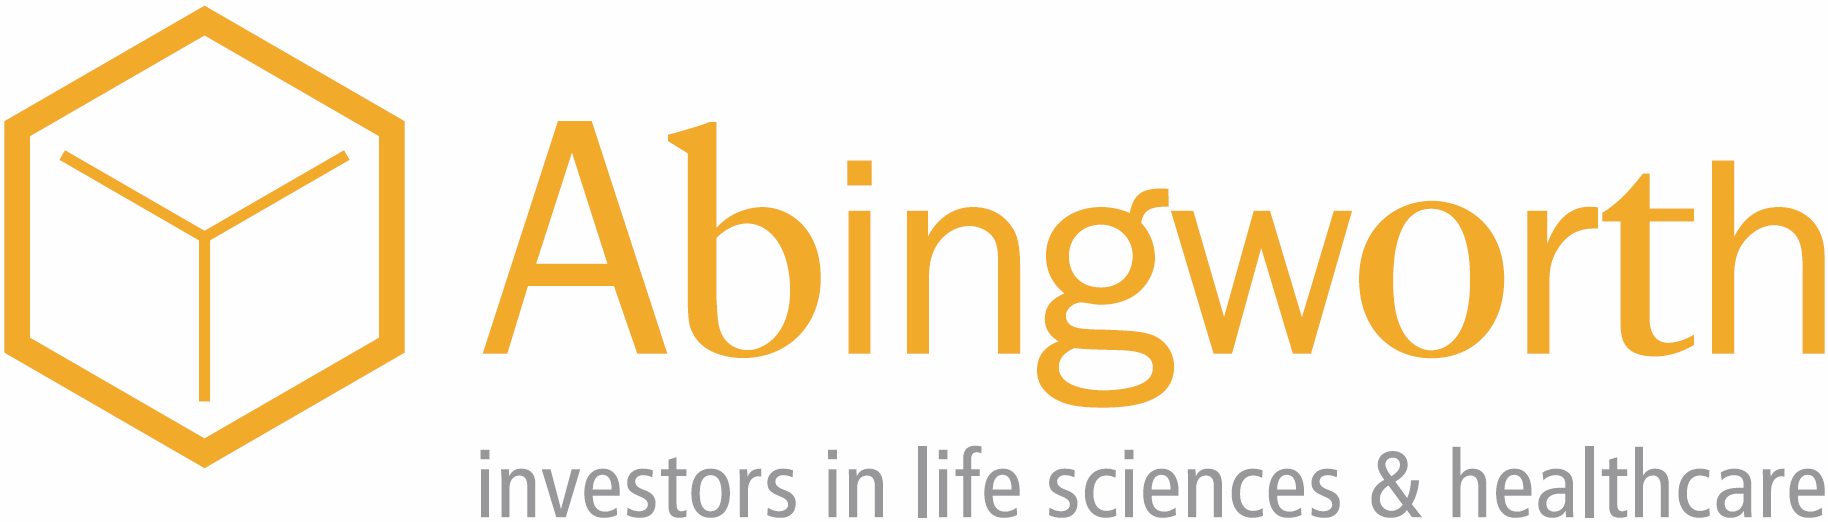 Abingworth Promotes Ken Haas and Vin Miles to Partners